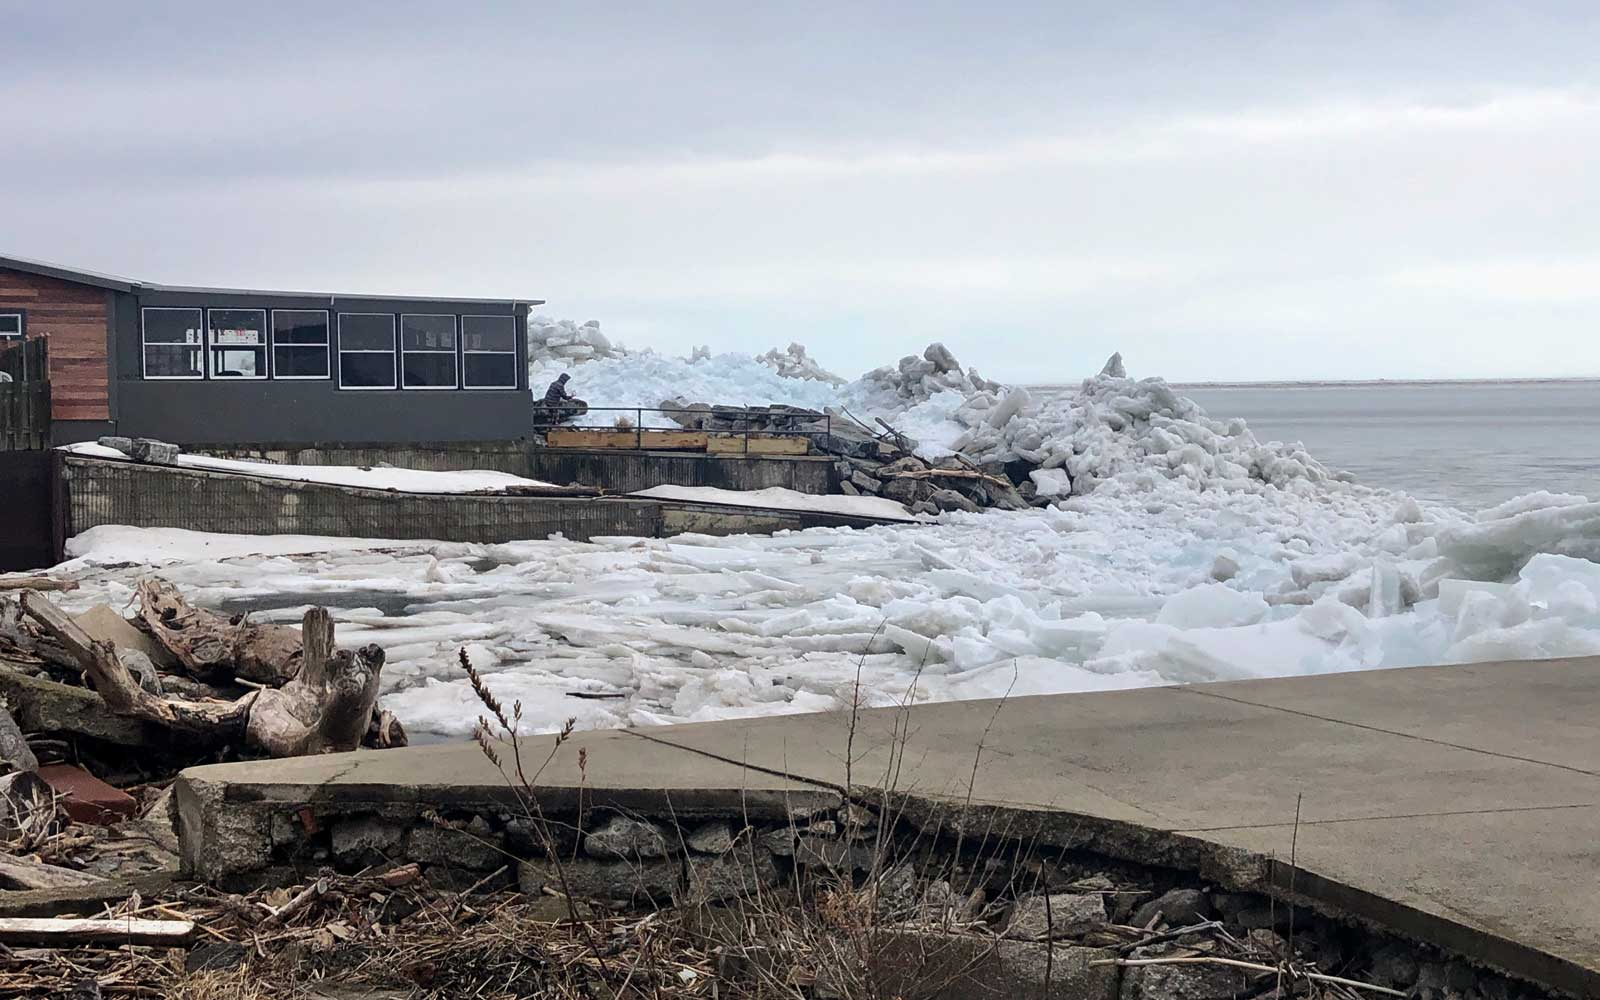 Hamburg Beach, New York experiences Ice Tsunami from Lake Erie